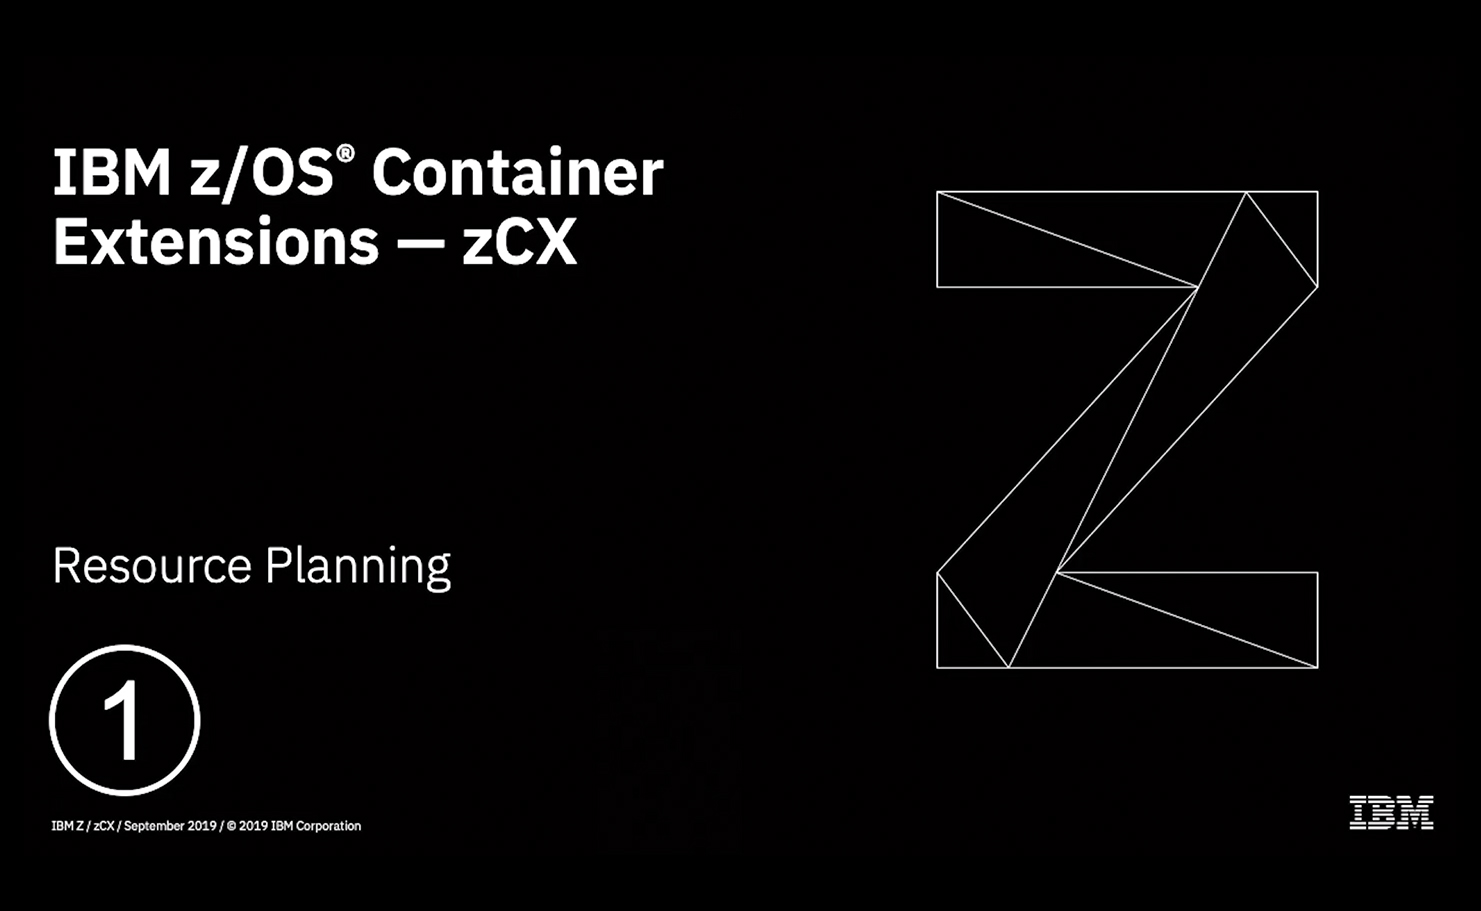 IBM z/OS Container Extensions